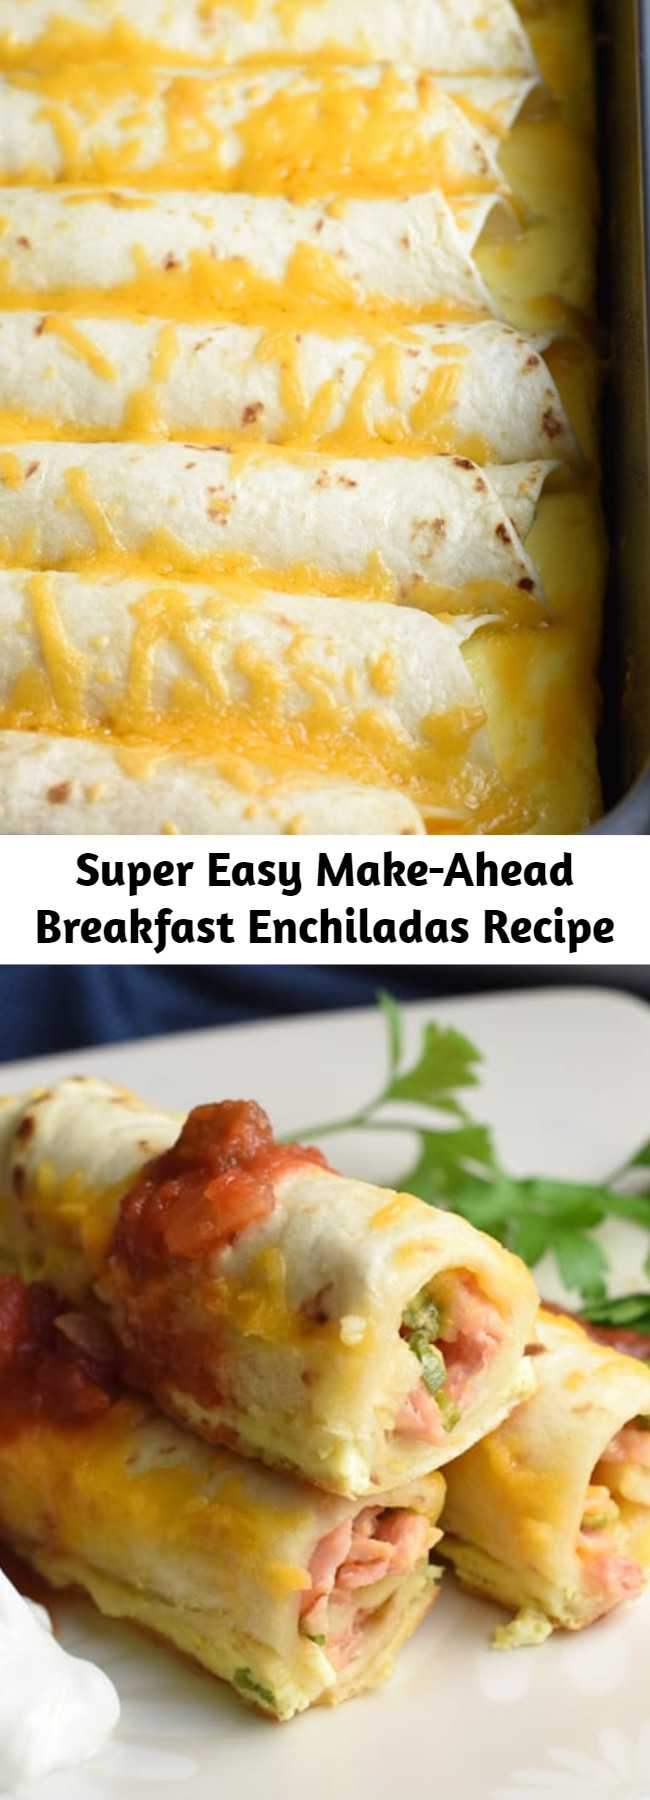 Super Easy Make-Ahead Breakfast Enchiladas Recipe - This Make-Ahead Breakfast Enchiladas recipe is a super easy and delicious casserole that can be made the night before and baked the next day! #breakfastenchiladas #makeaheadbreakfast